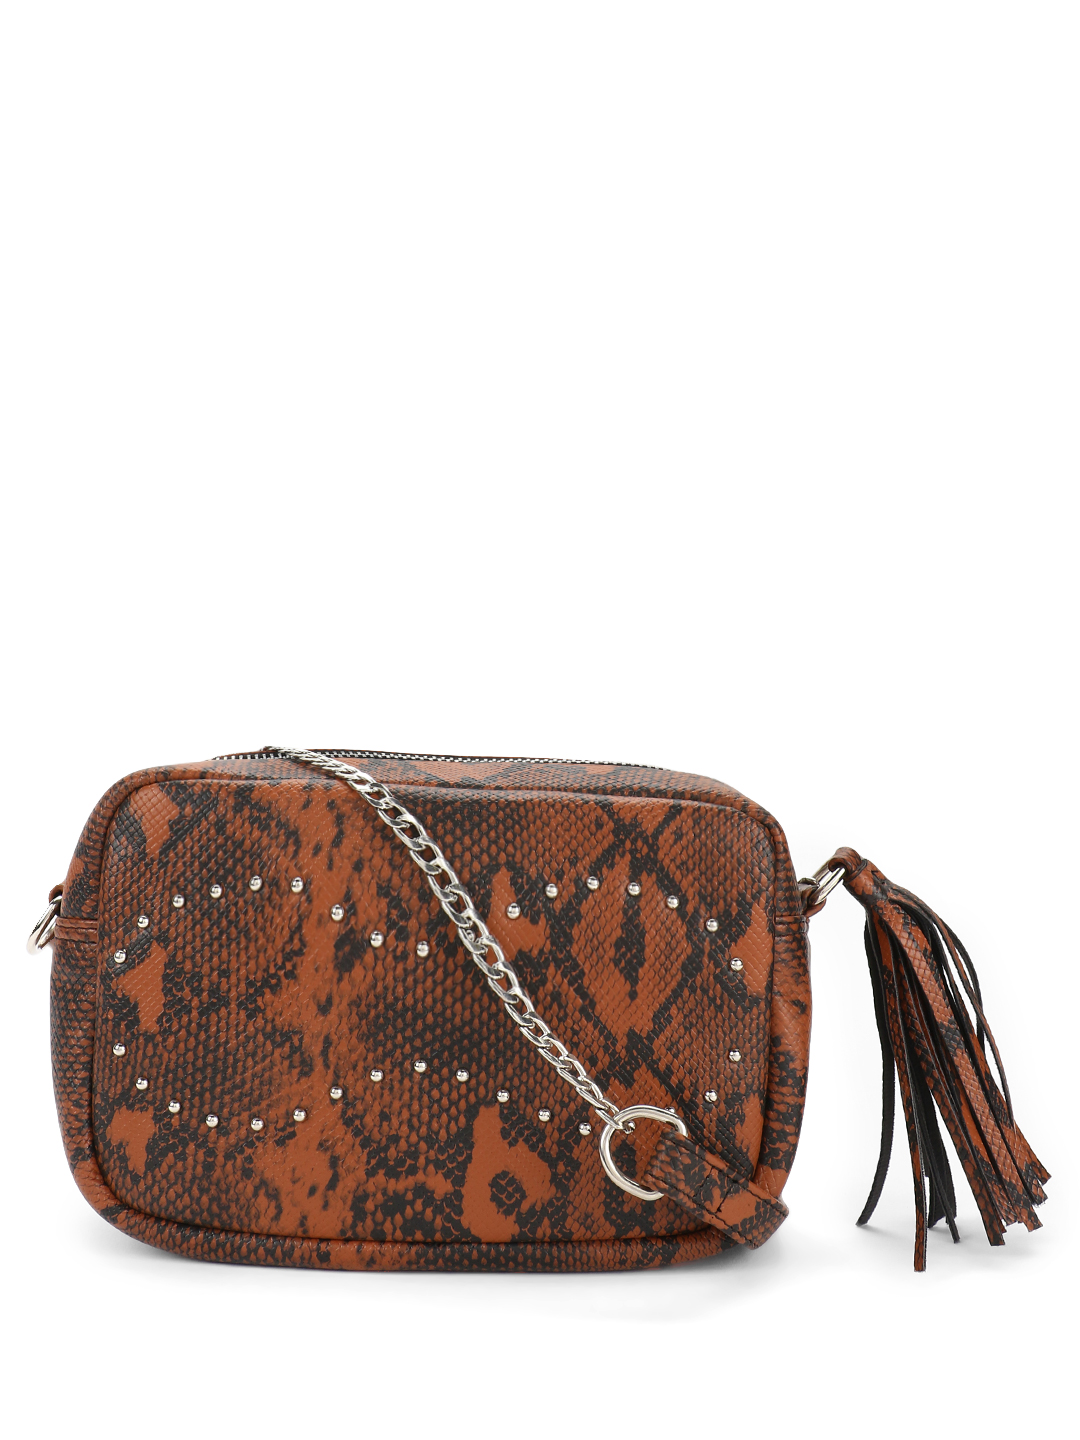 Paris Belle Brown Snakeskin Stud Detail Sling Bag 1